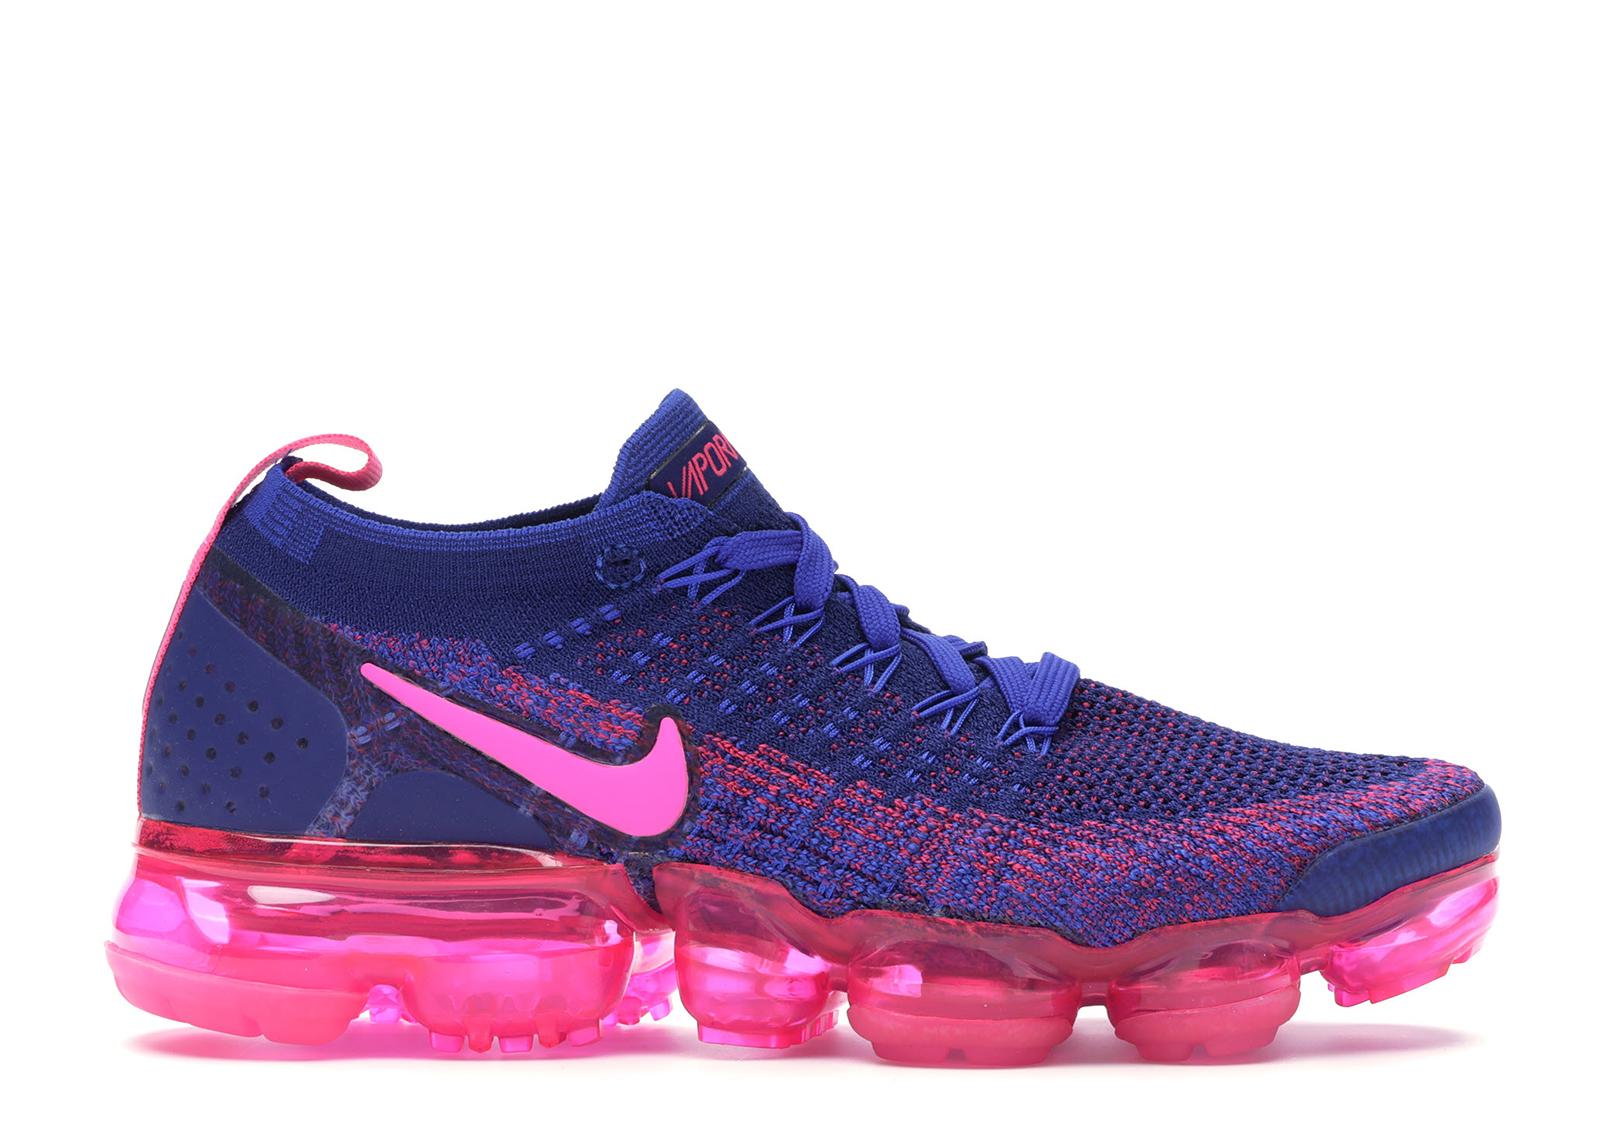 buy cheap many styles available Nike Air Vapormax 2 Racer Pink Racer Blue (w) - Save 29% - Lyst